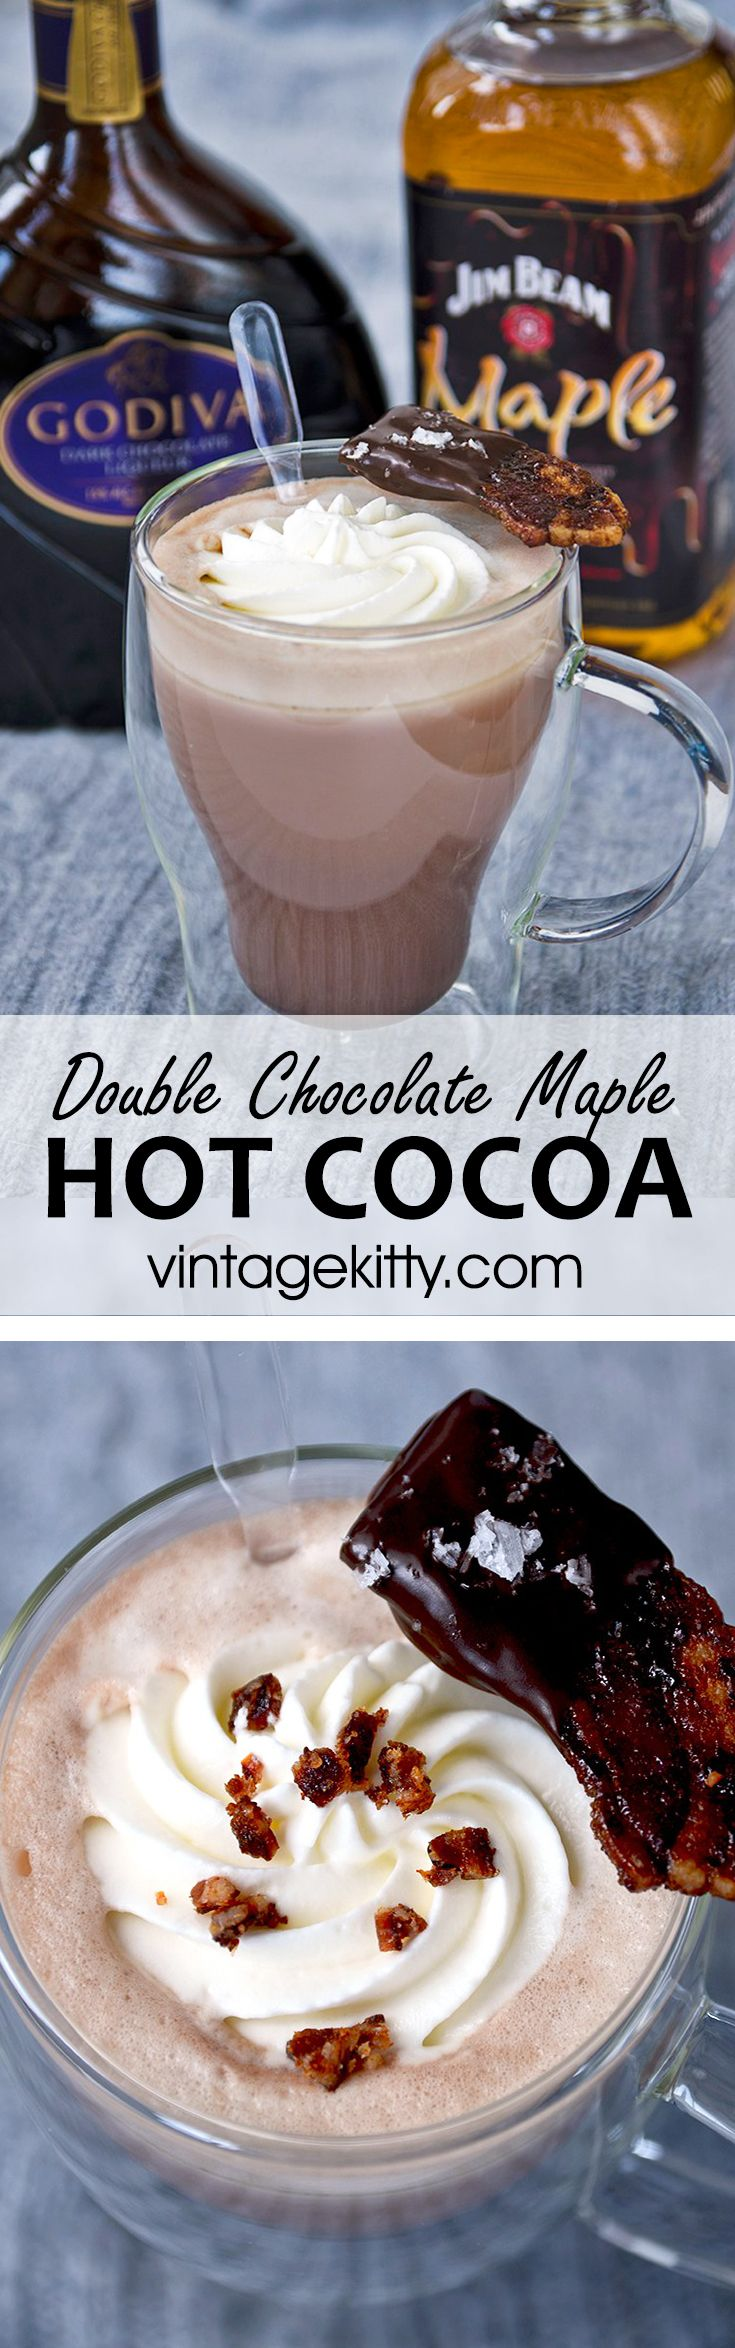 Double Chocolate Maple Hot Cocoa is just the cocktail to warm you up on chilly nights! A little Jim Beam Maple Whiskey, a shot of Godiva Chocolate liqueur and you have a sweet and smoky adult beverage that yearns to be served fireside with a piece of chocolate candied bacon!